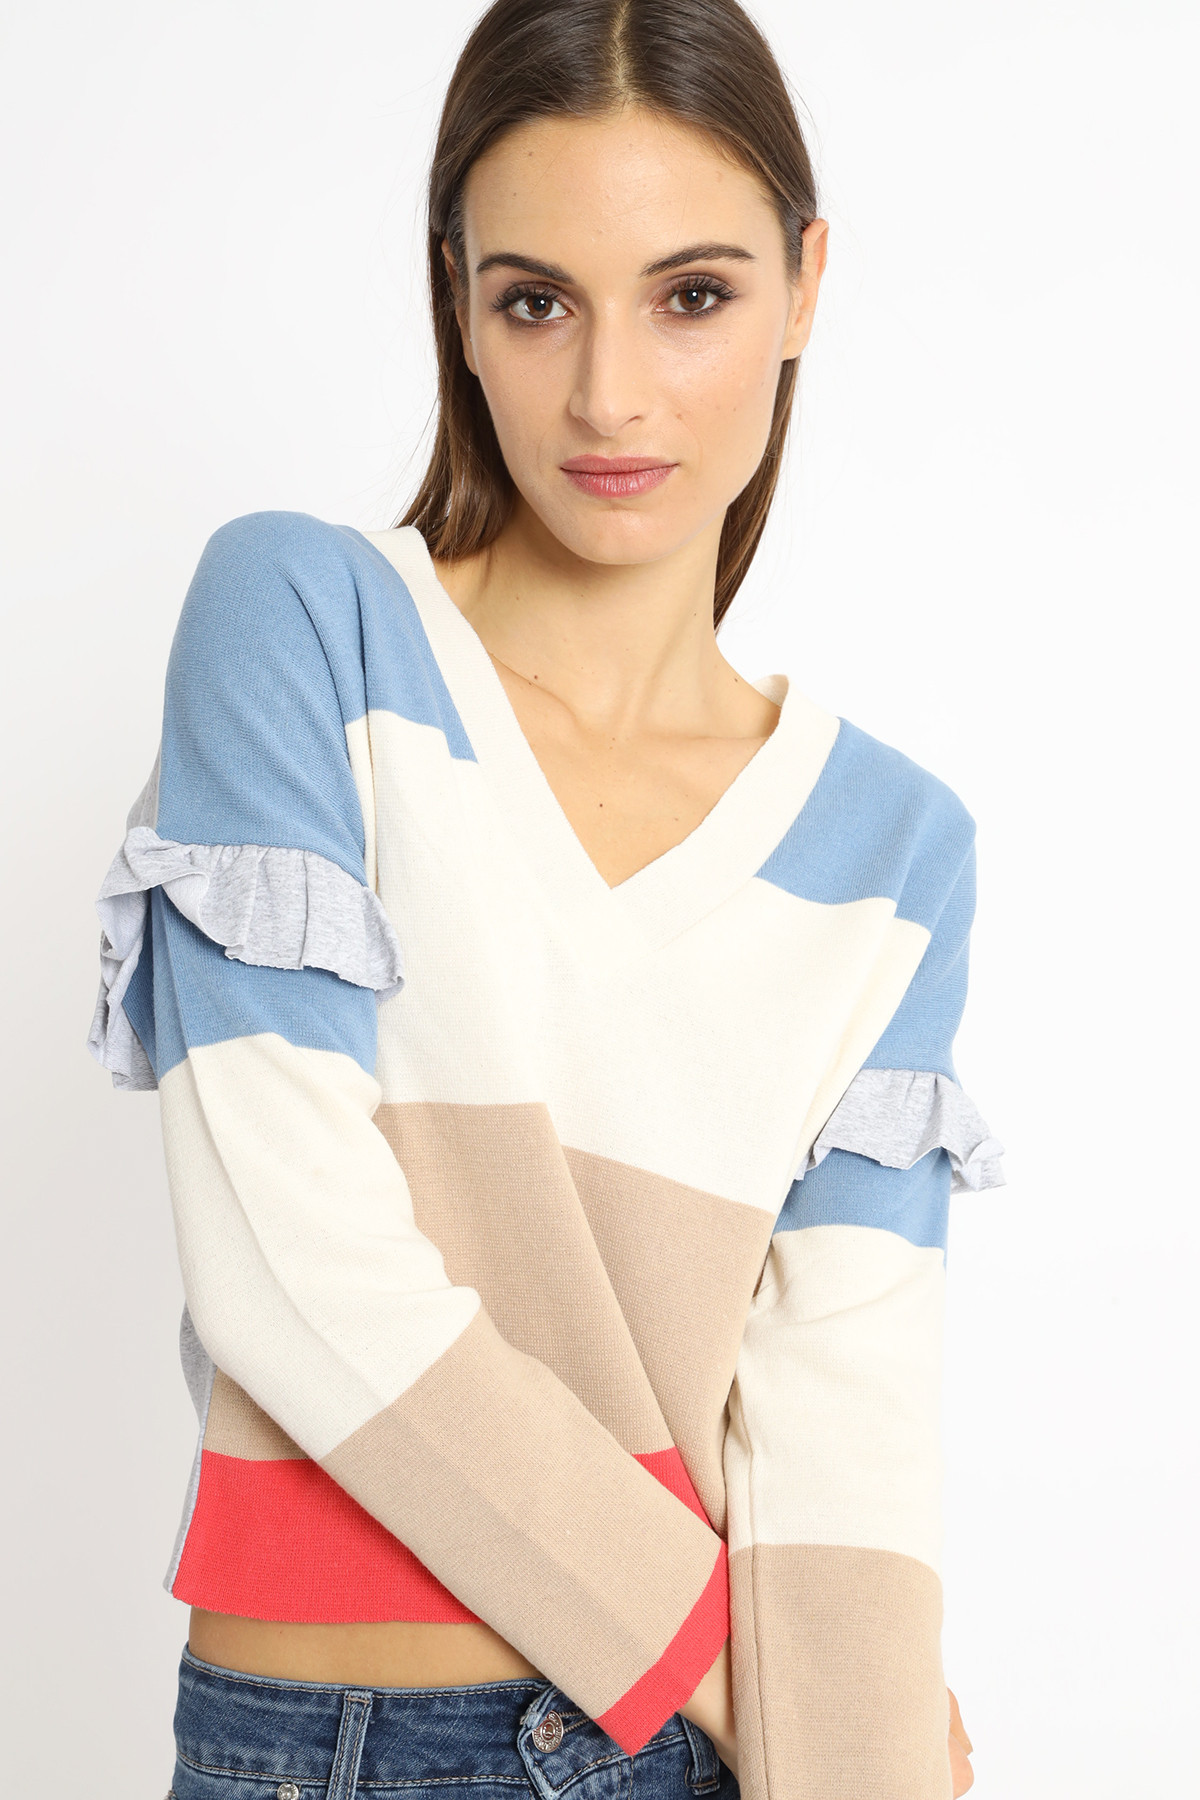 Bimaterial Striped Sweater with Rouge